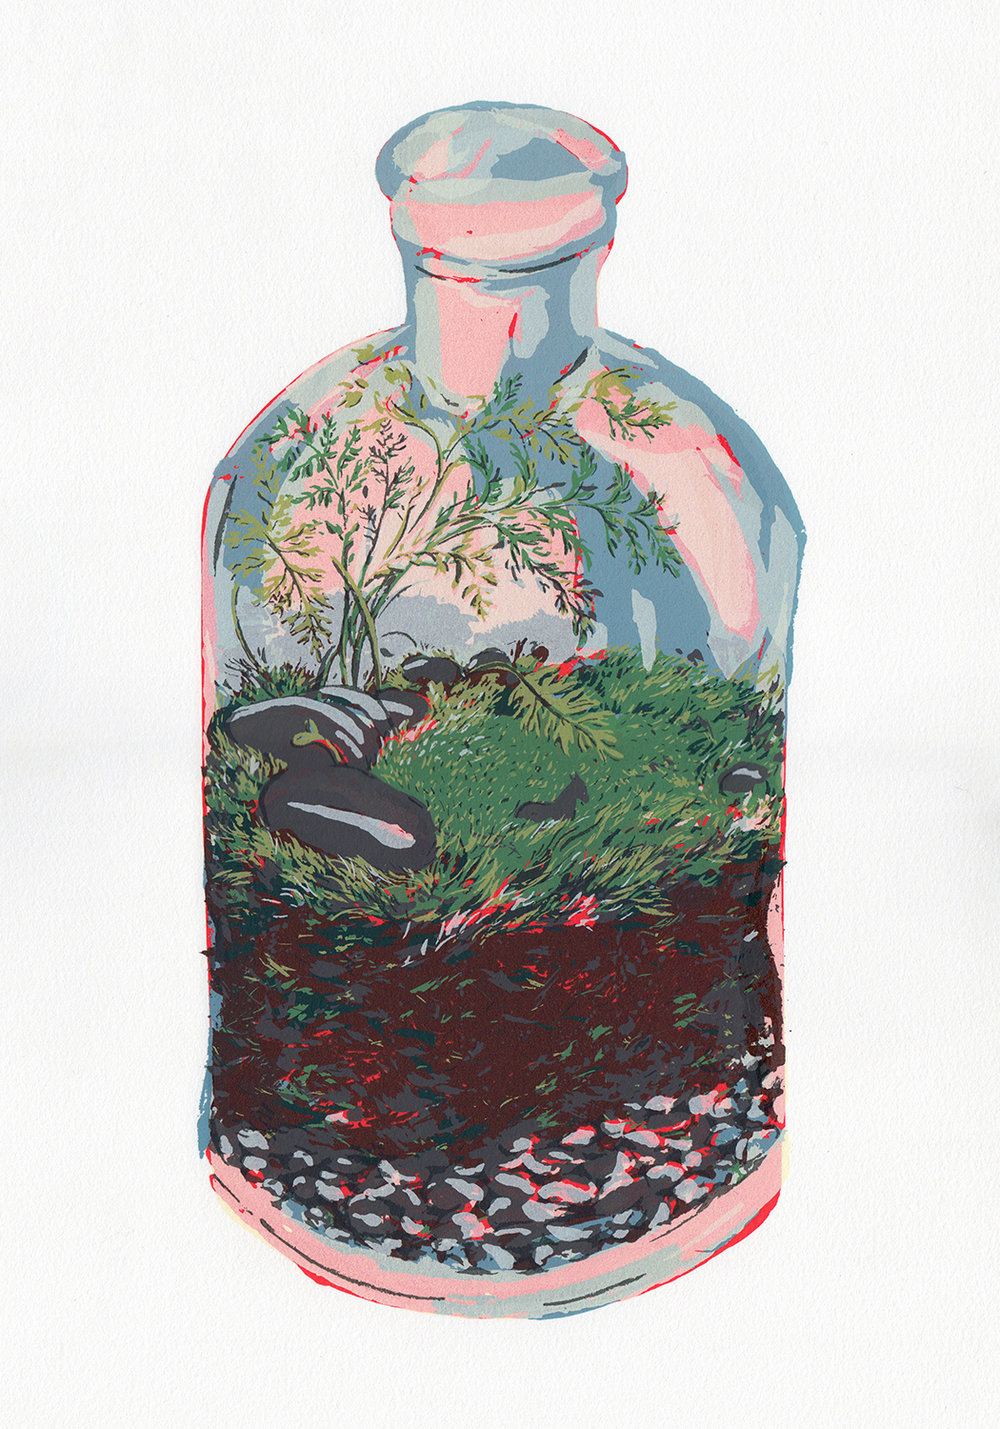 Screenprint on paper; a portrait of a terrarium, in the hopes of pushing the boundaries that a silkscreen imposes.